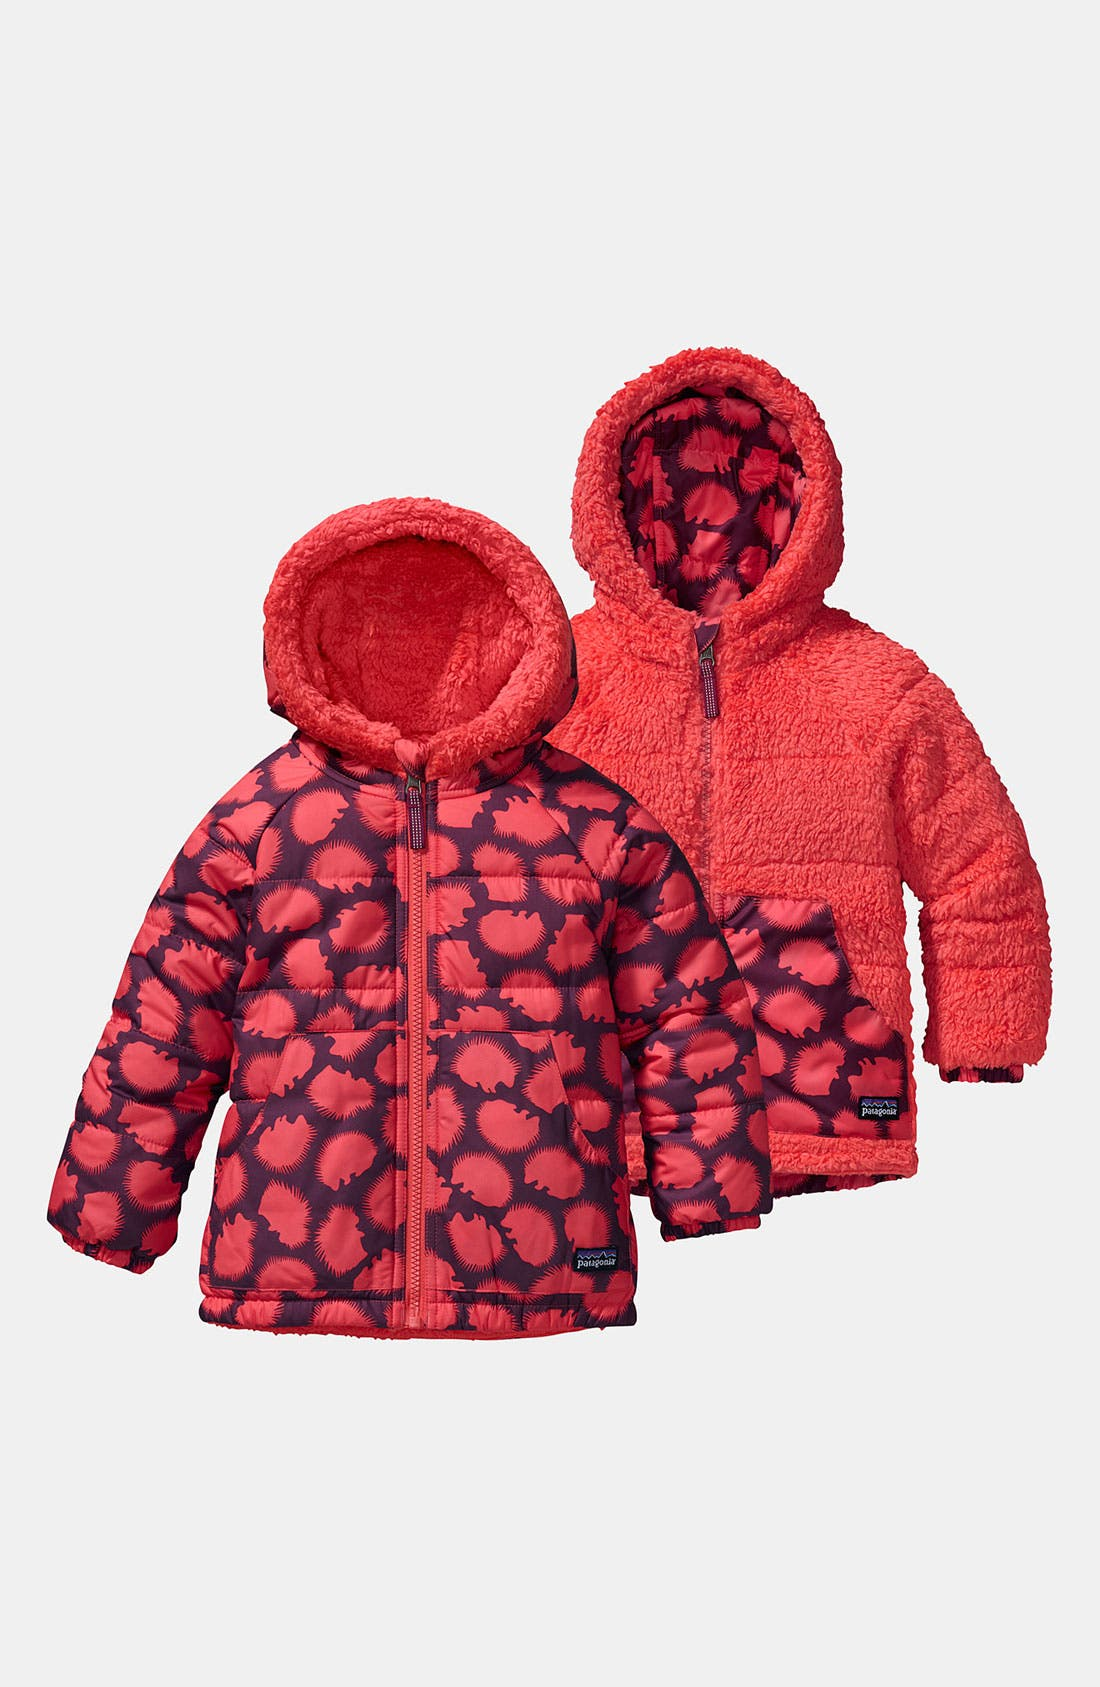 Alternate Image 1 Selected - Patagonia Reversible Jacket (Baby Girls)